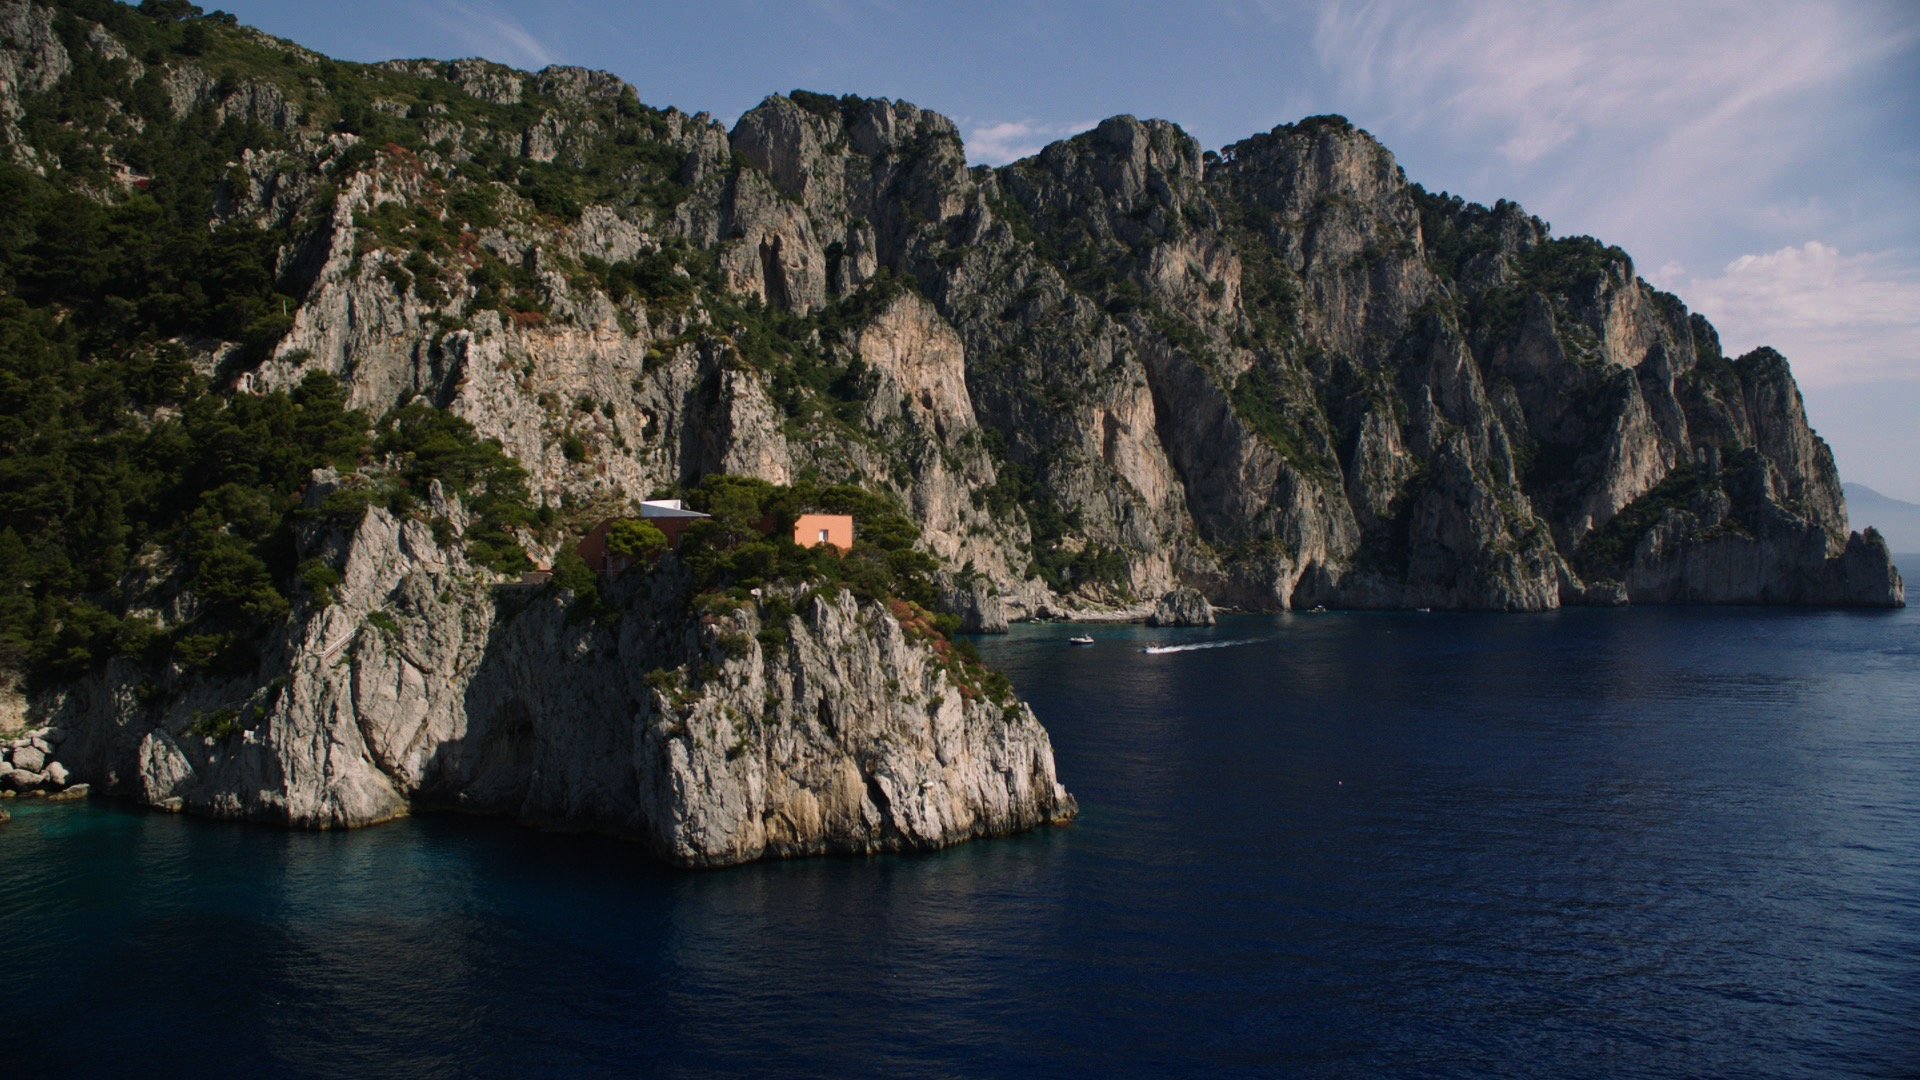 Built on the edge of the cliff, it is a brick box built to withstand stormy winters as the waves often reach the crest of the rock and slam the front of the house. The house is often used for serious study and writing and is still owned by Malaparte's family.